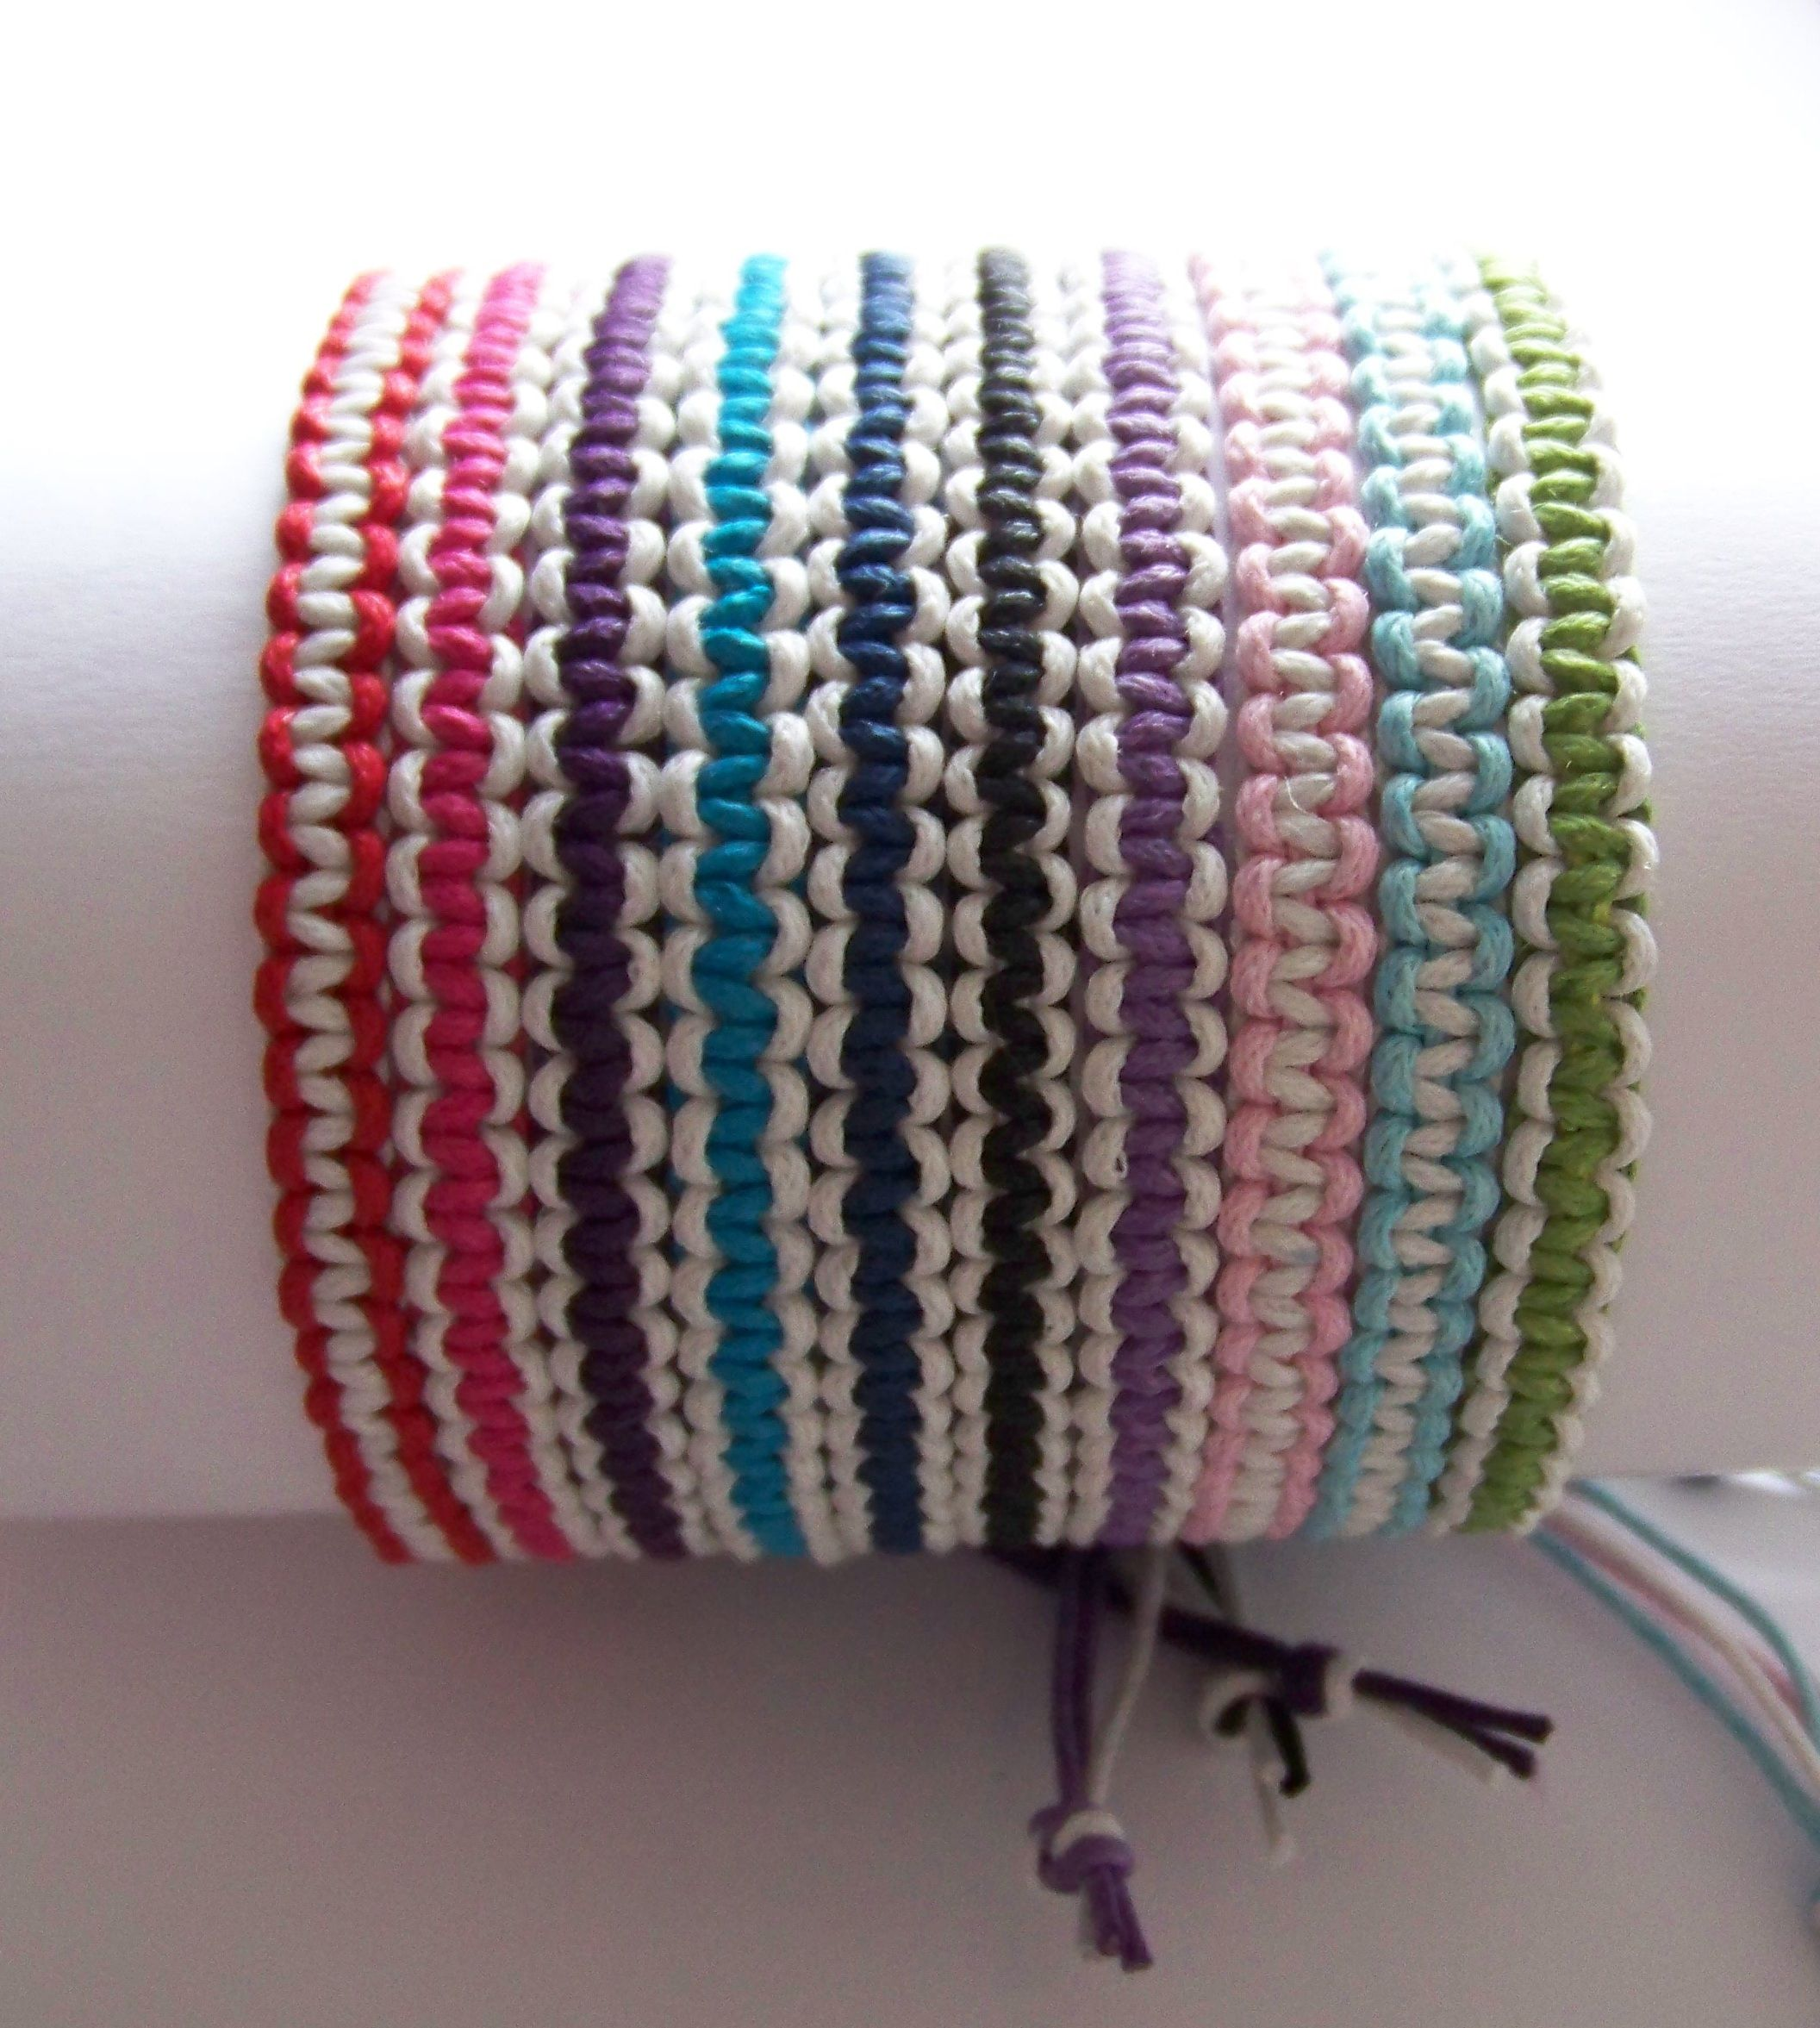 Two Color Friendship Bracelets Made Using 1mm Waxed Cord